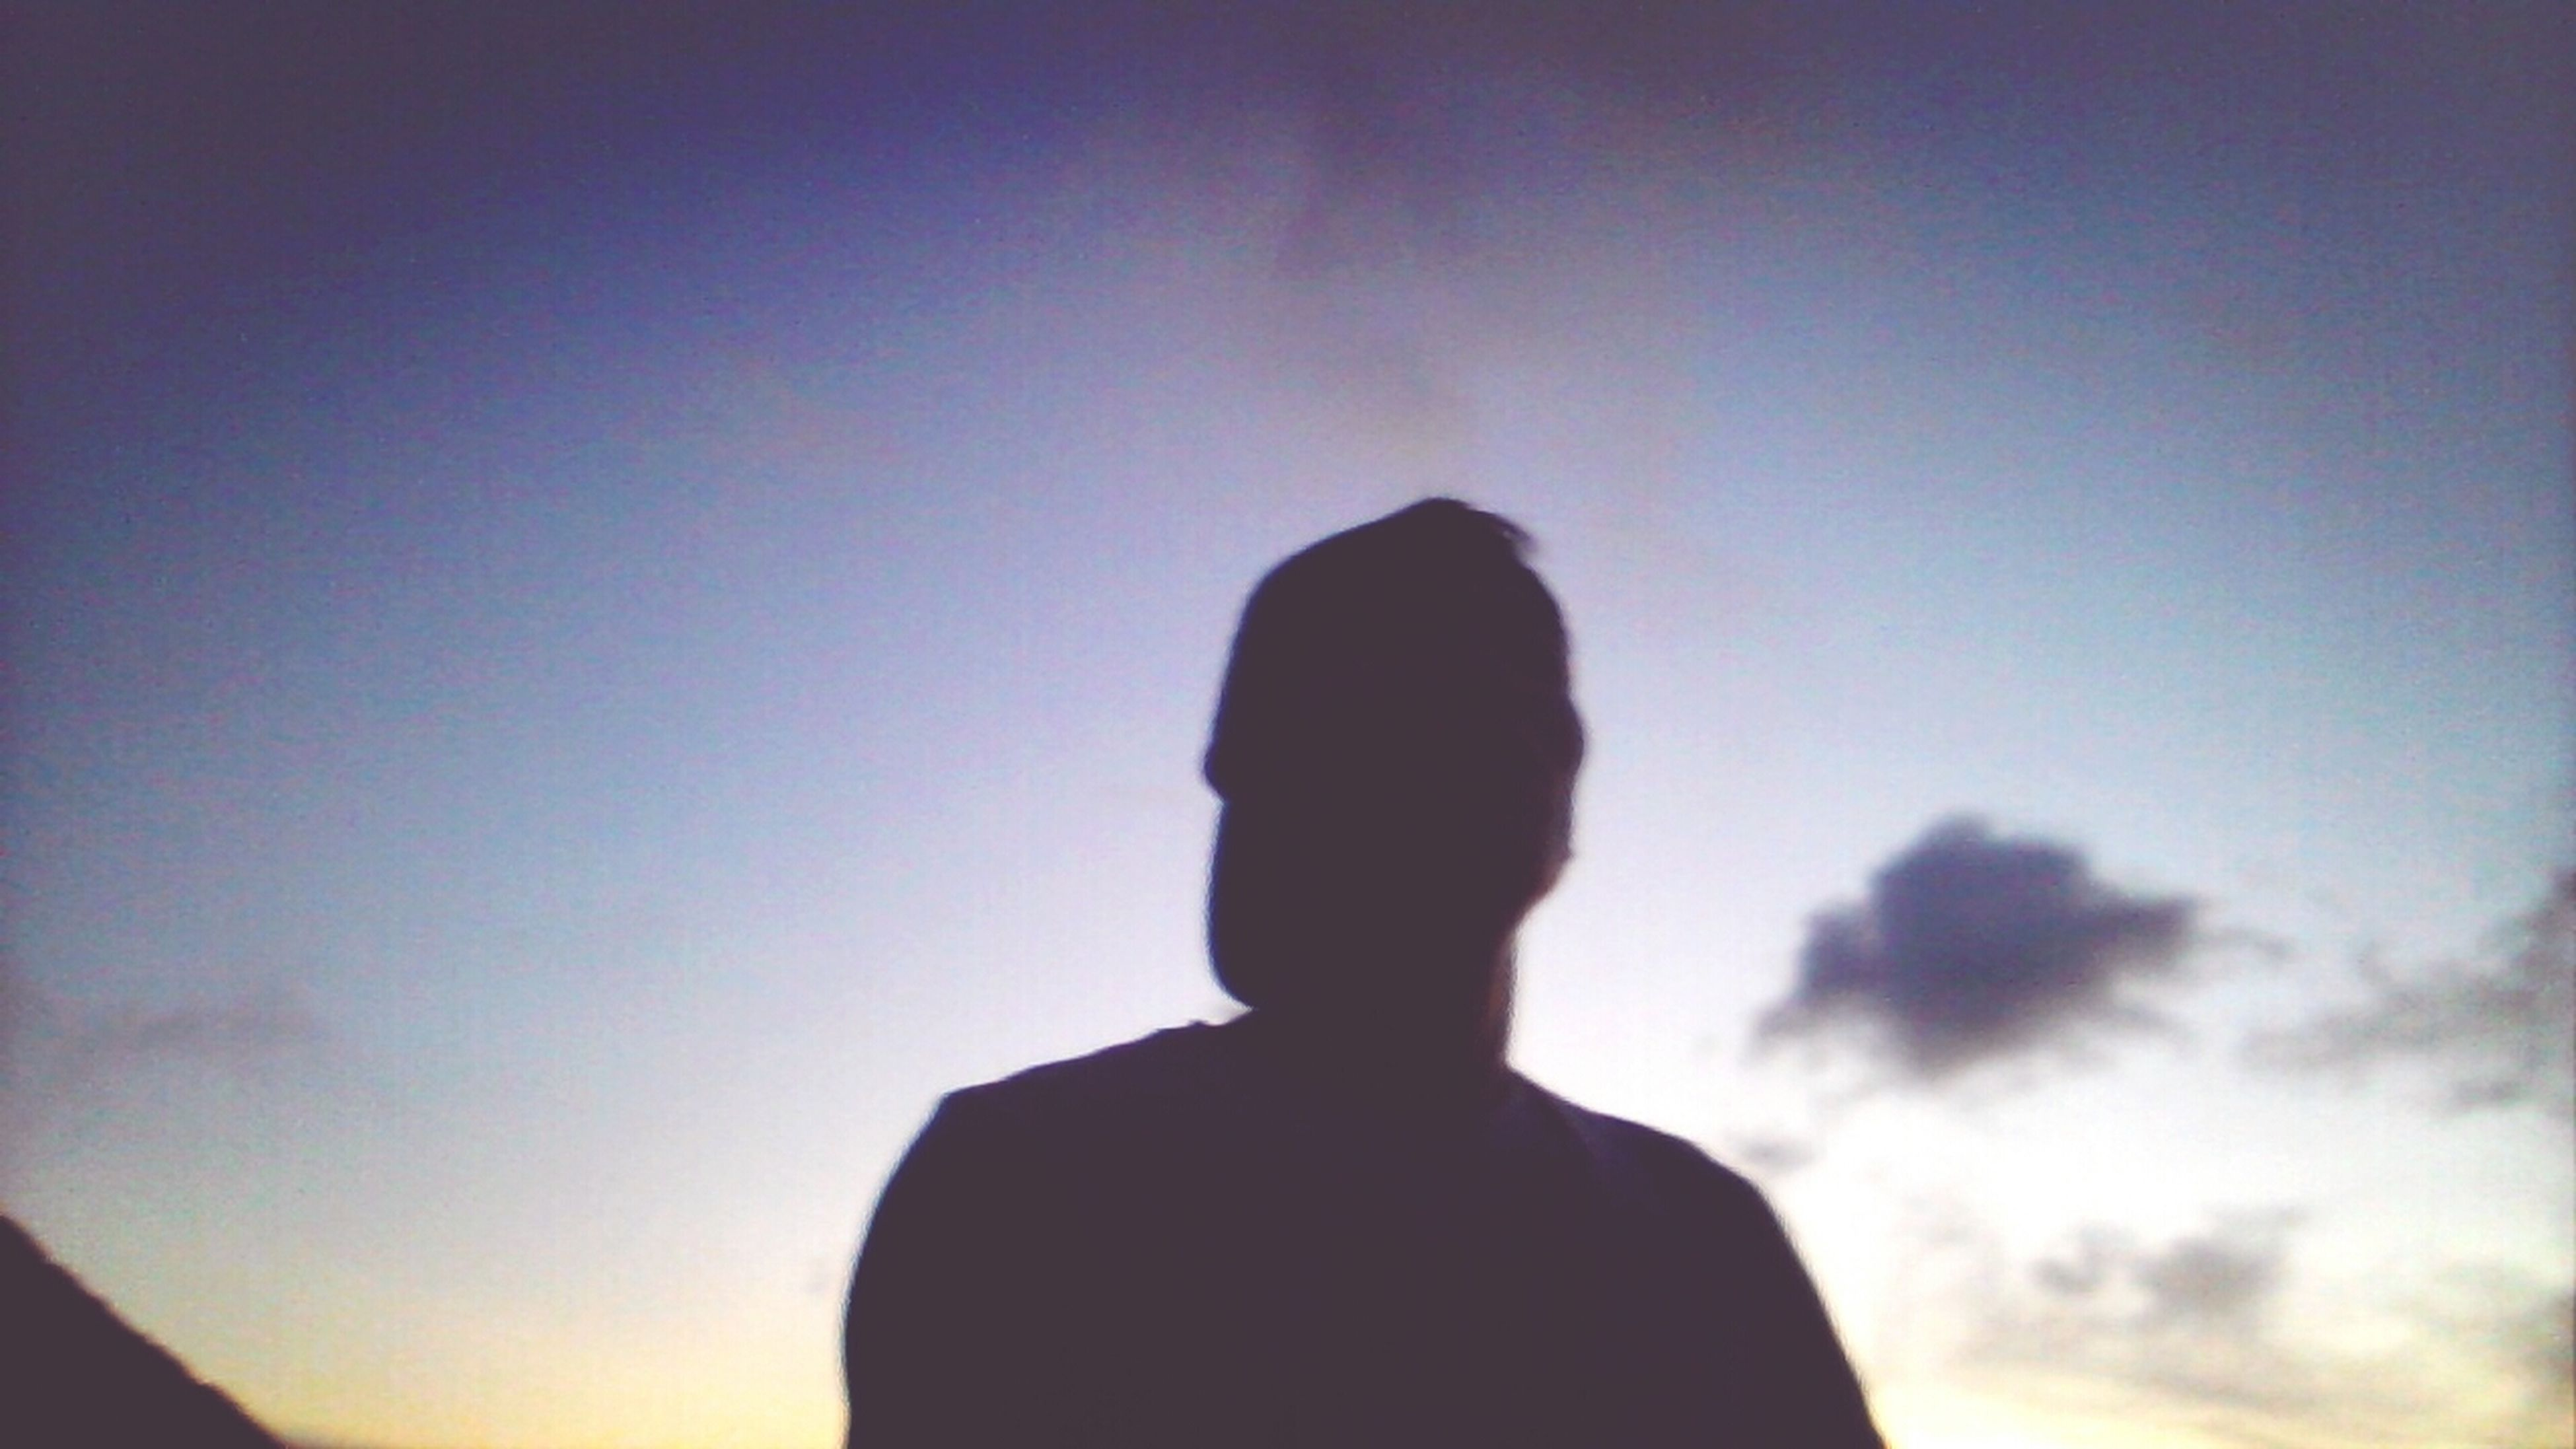 silhouette, lifestyles, rear view, standing, waist up, sky, leisure activity, headshot, sunset, copy space, men, low angle view, three quarter length, outline, person, dusk, back lit, unrecognizable person